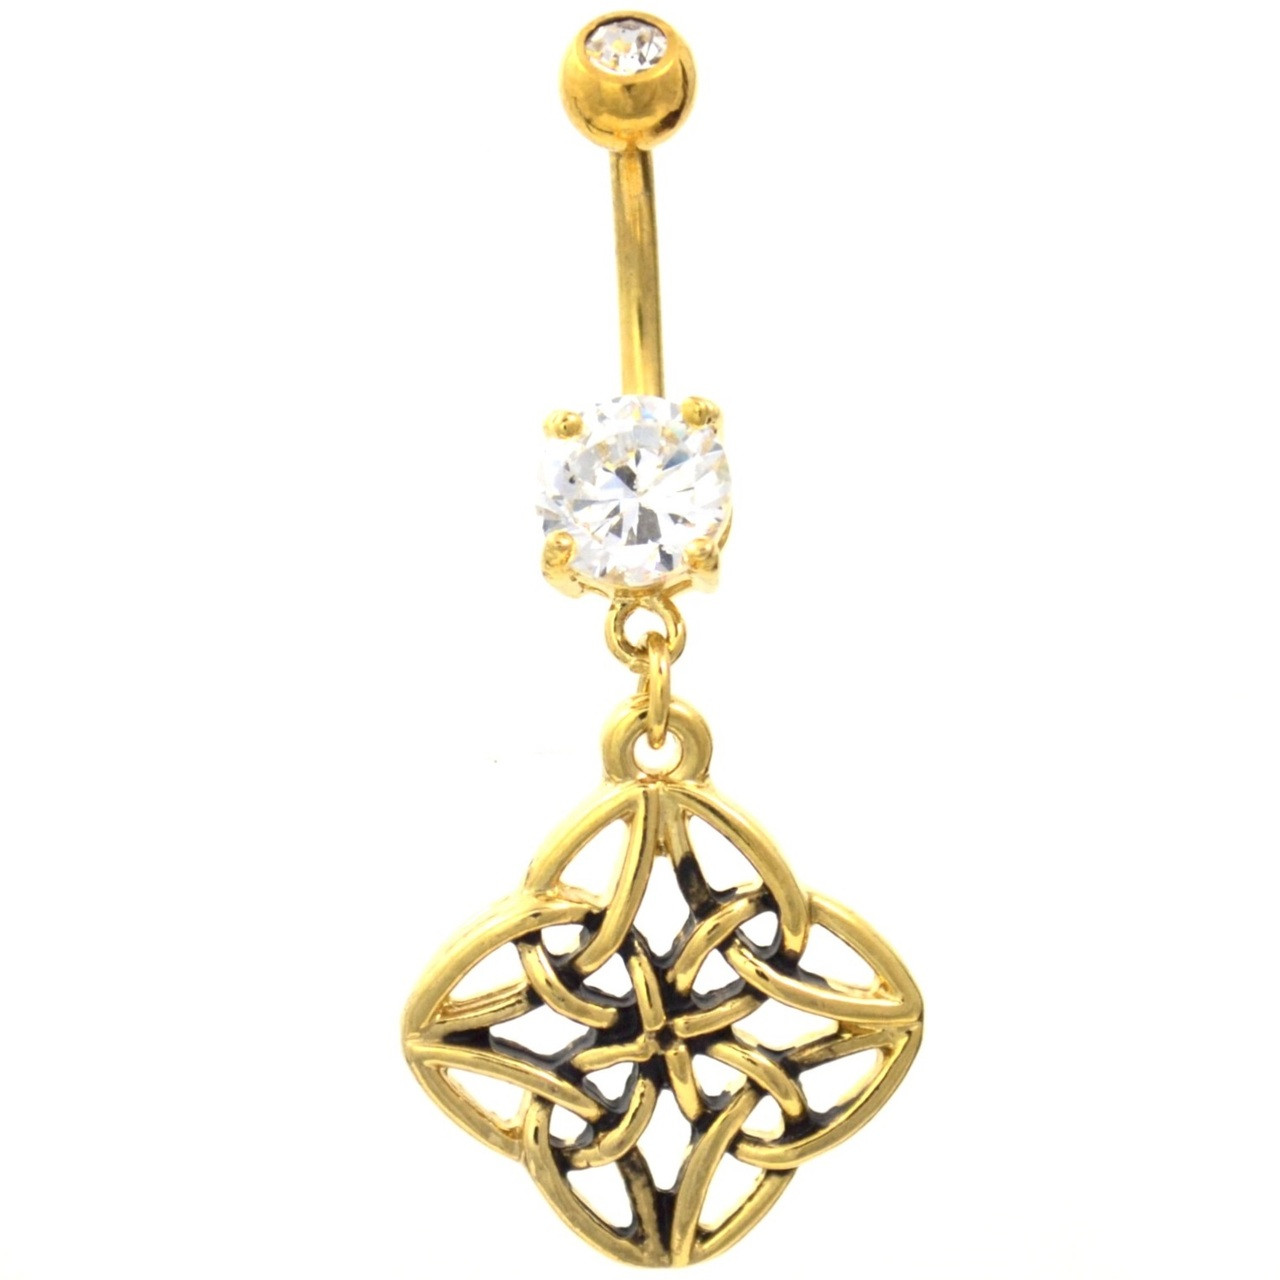 4 Sided Celtic Knot Gold Plated Belly Ring Bodydazz Com